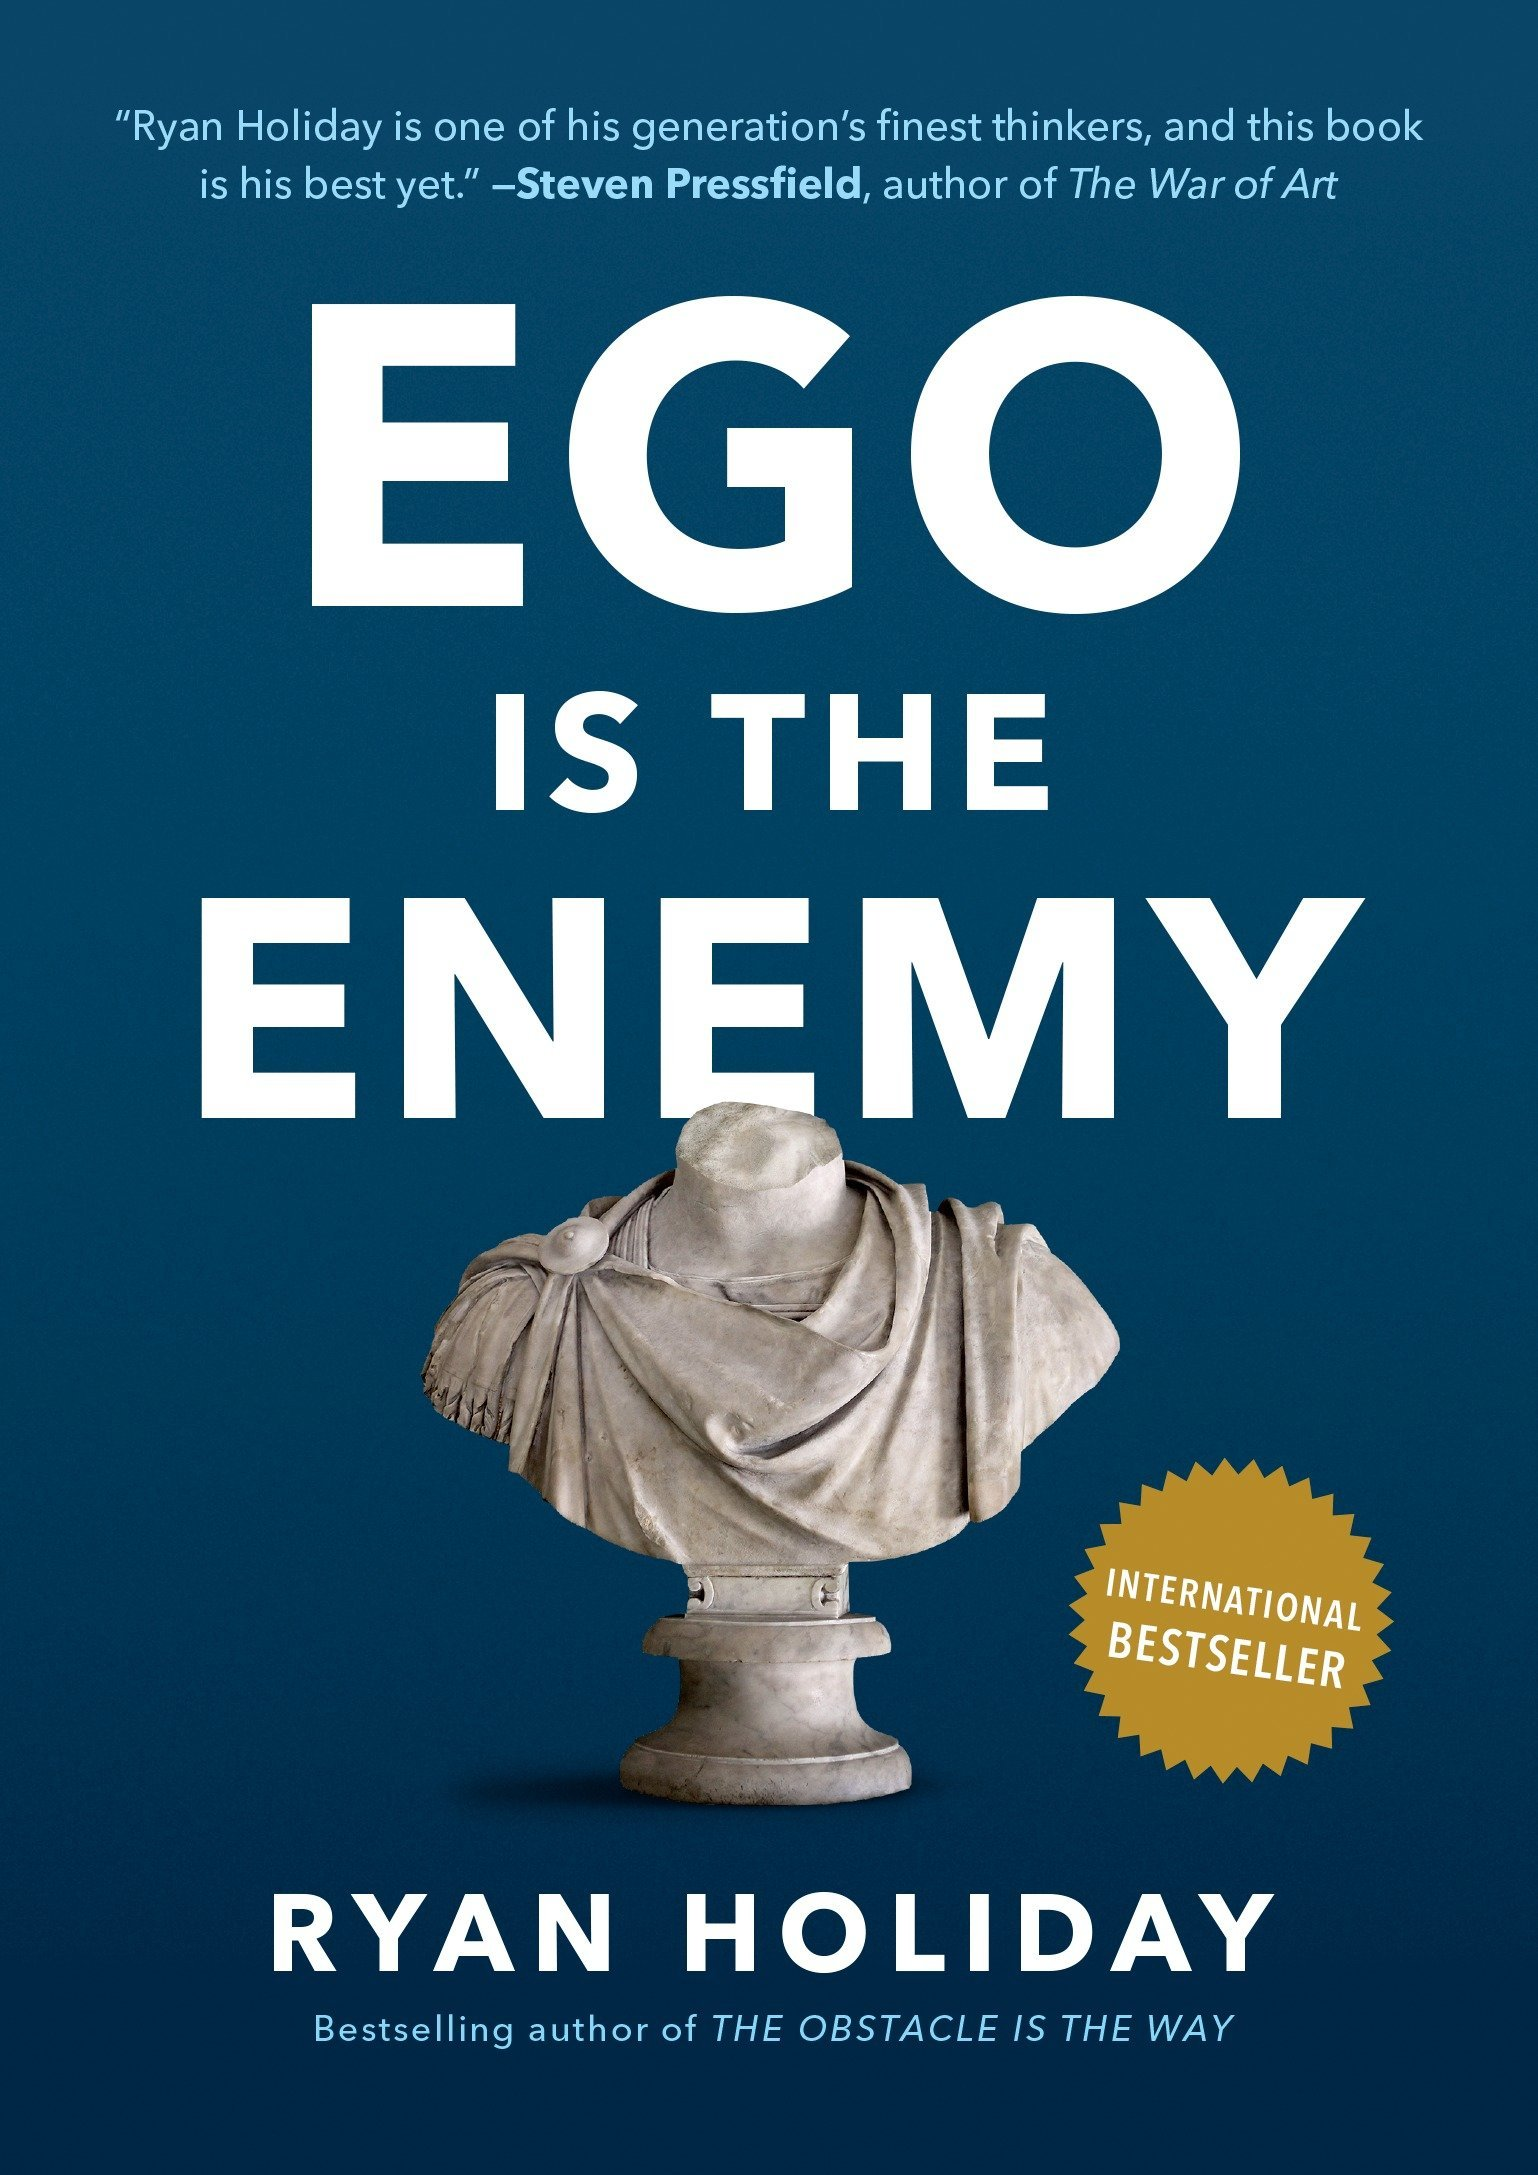 Ego is the Enemy (Ryan Holiday)